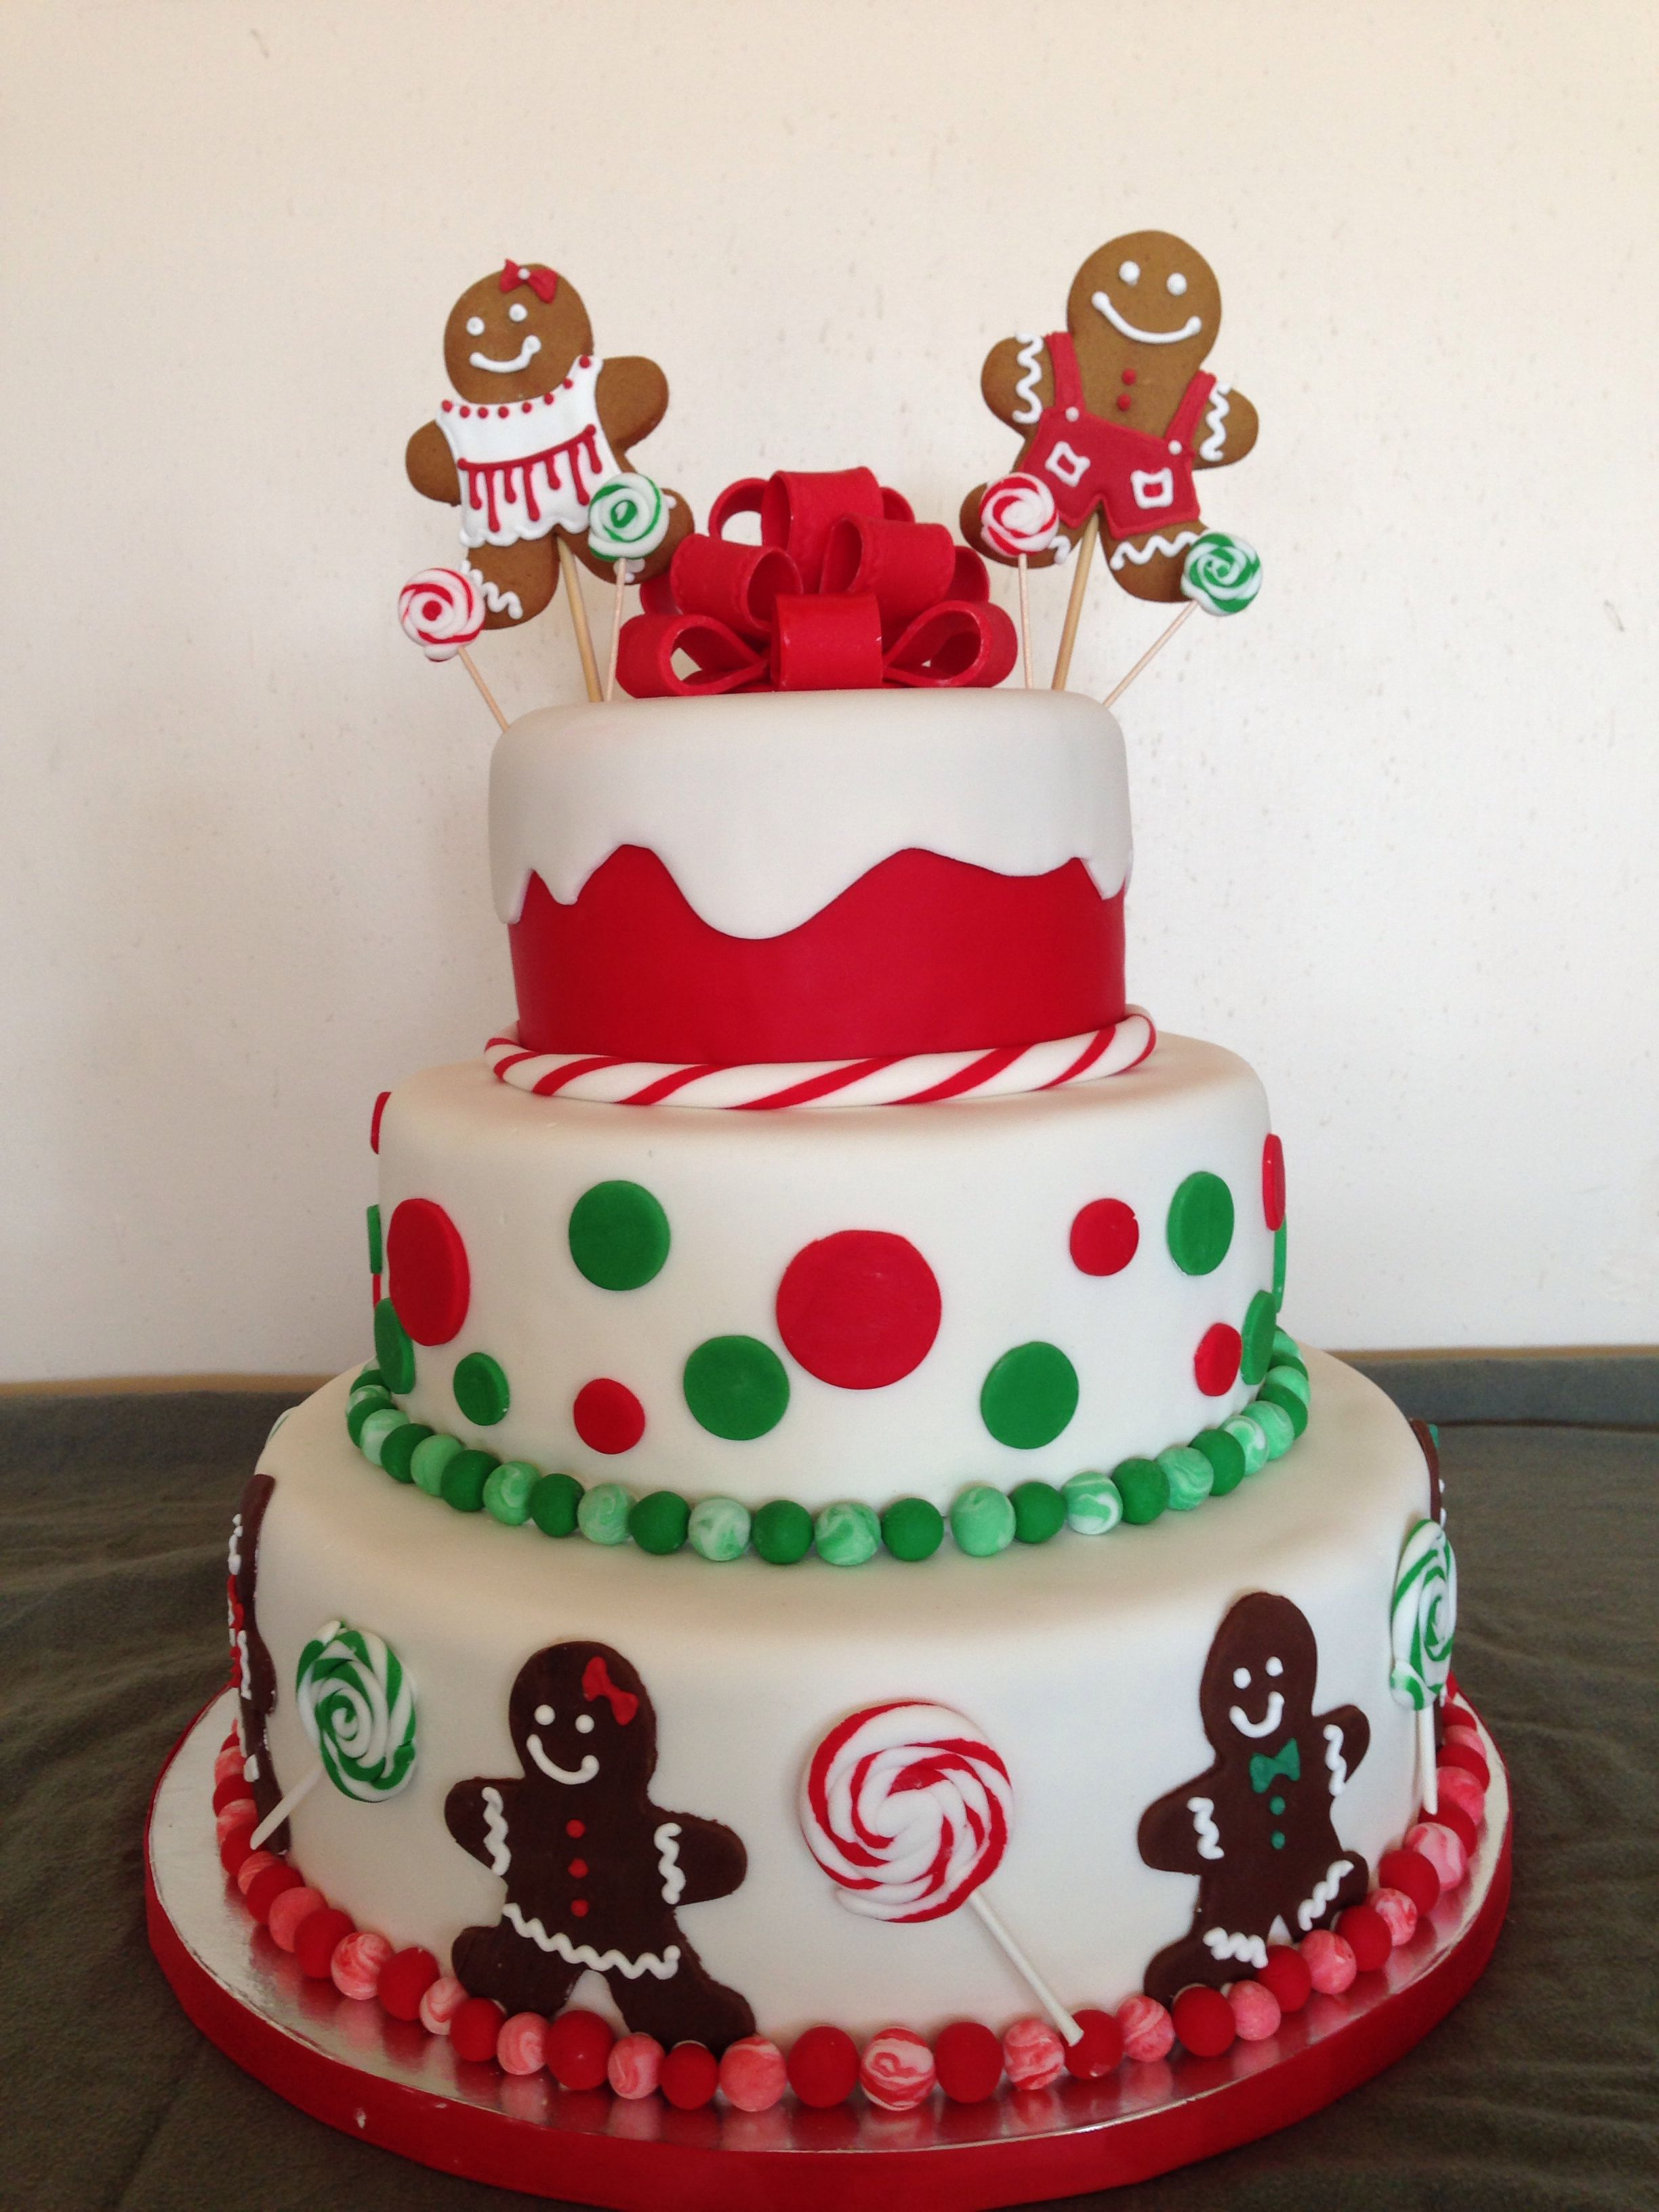 Strange Fun Festive Christmas Birthday Cake With Images Christmas Funny Birthday Cards Online Eattedamsfinfo